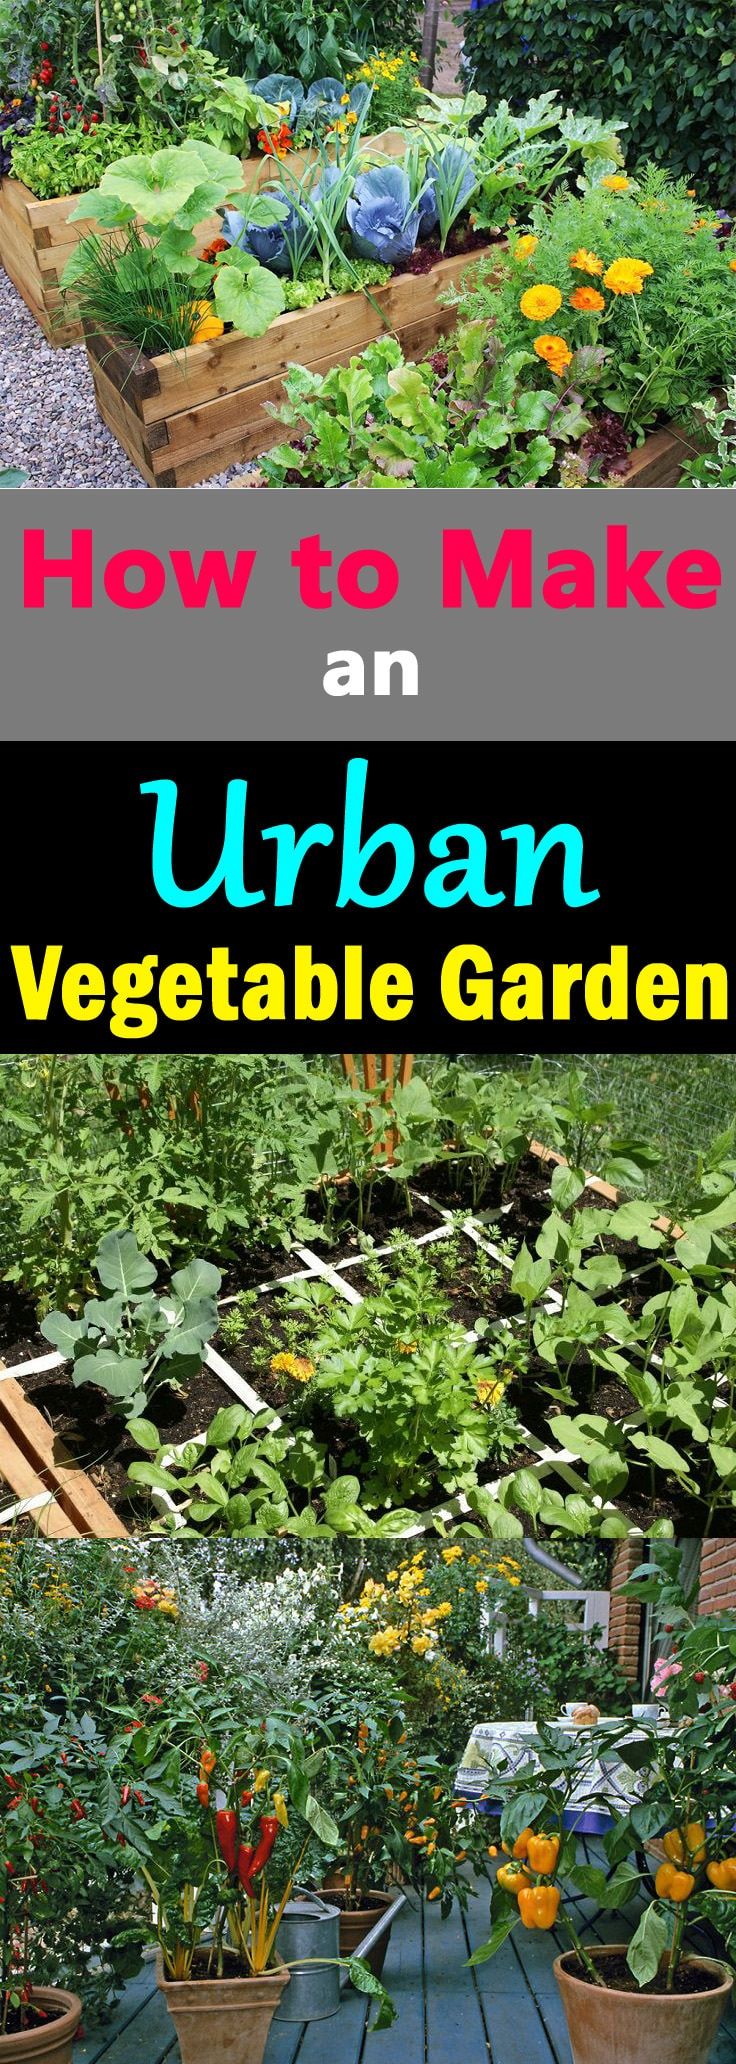 Urban Vegetable Gardening - Want to know how to make an urban vegetable garden this article will help you